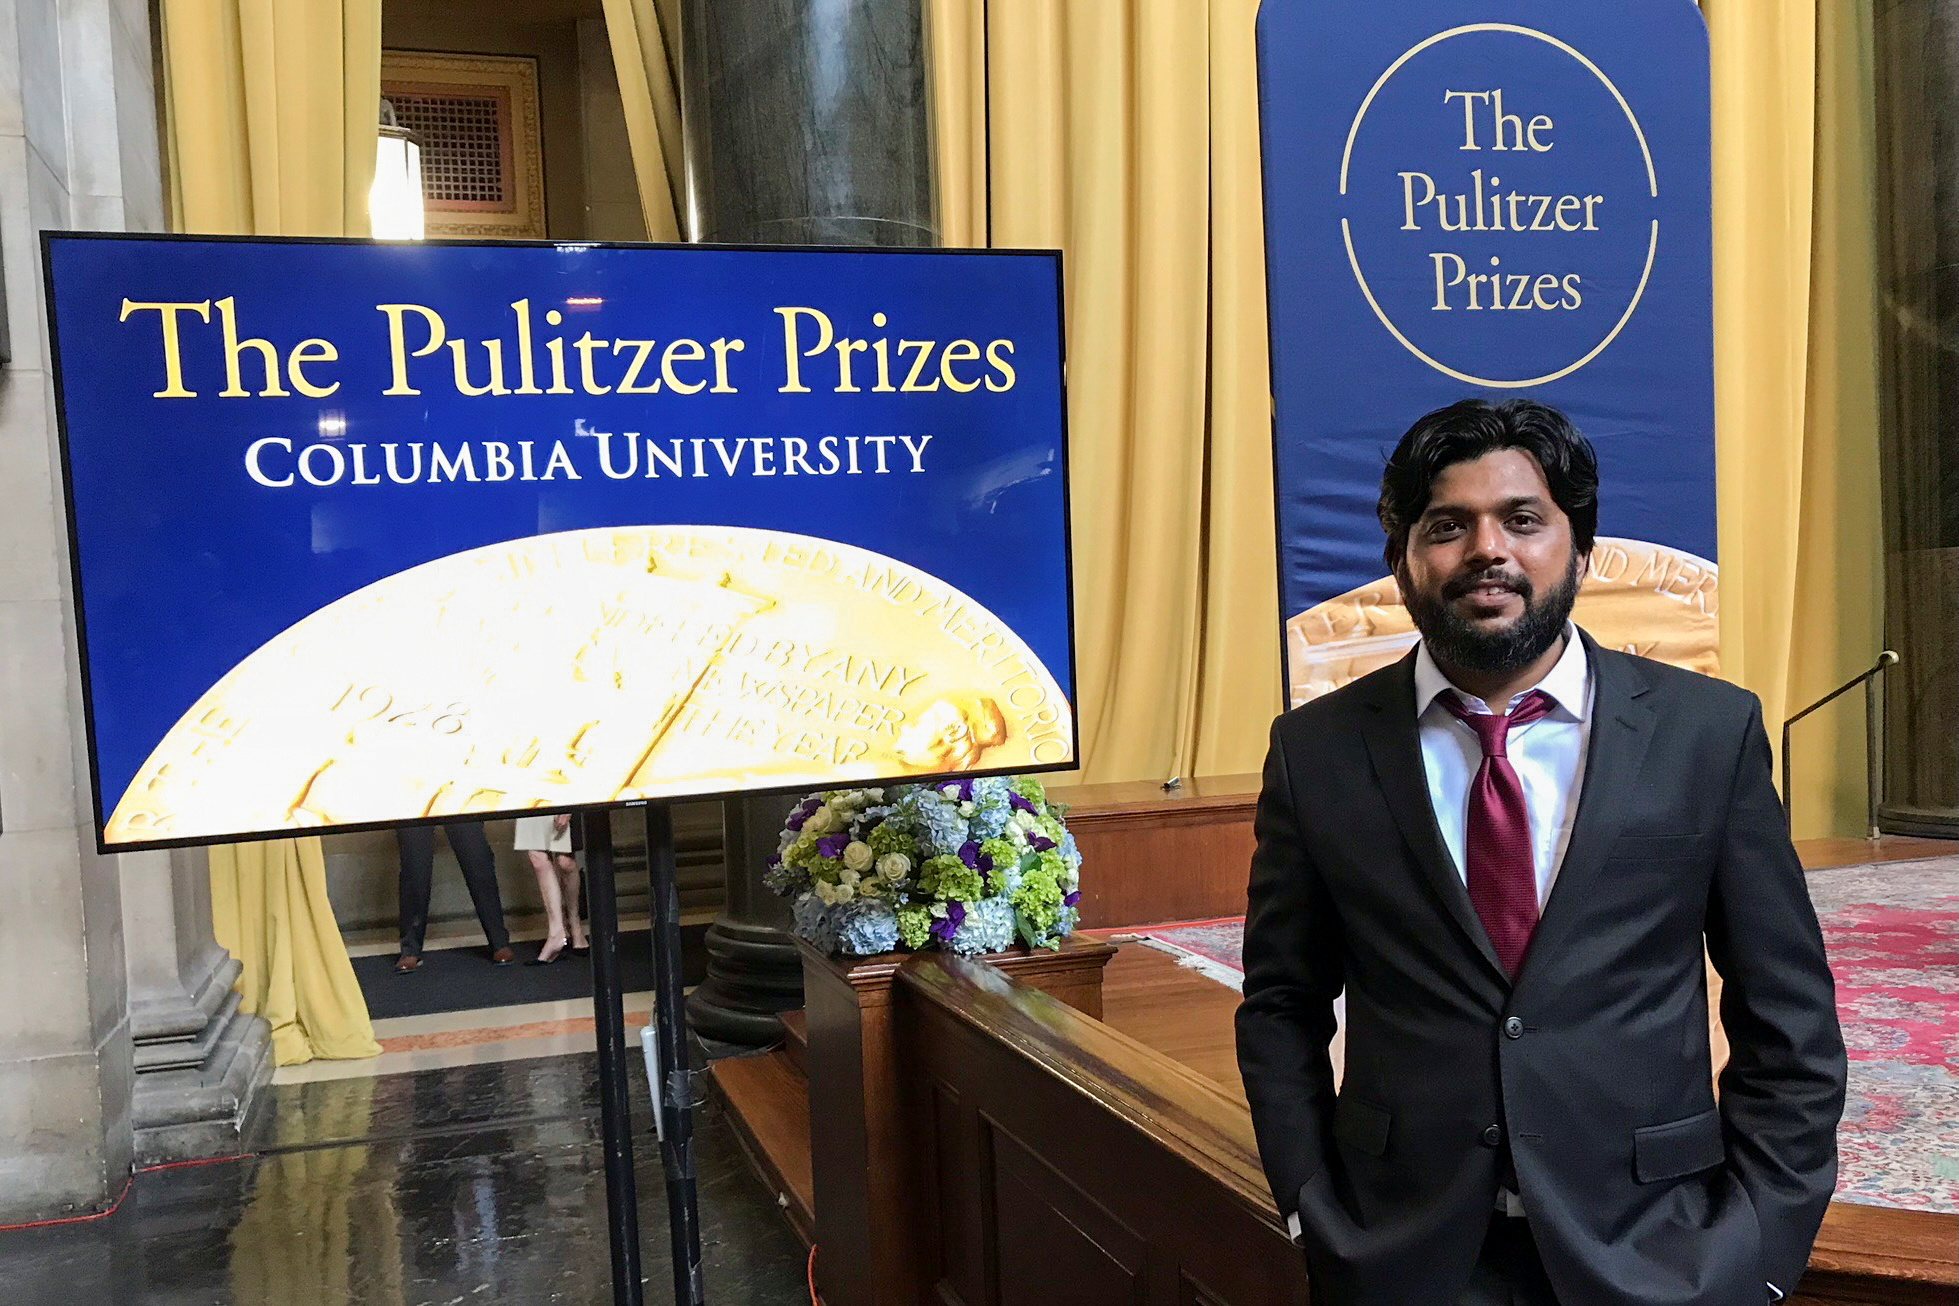 Danish Siddiqui, a Reuters photographer based in India, poses for a picture at Columbia University's Low Memorial Library during the Pulitzer Prize giving ceremony, in New York, U.S., May 30, 2018.  REUTERS/Mohammad Ponir Hossain